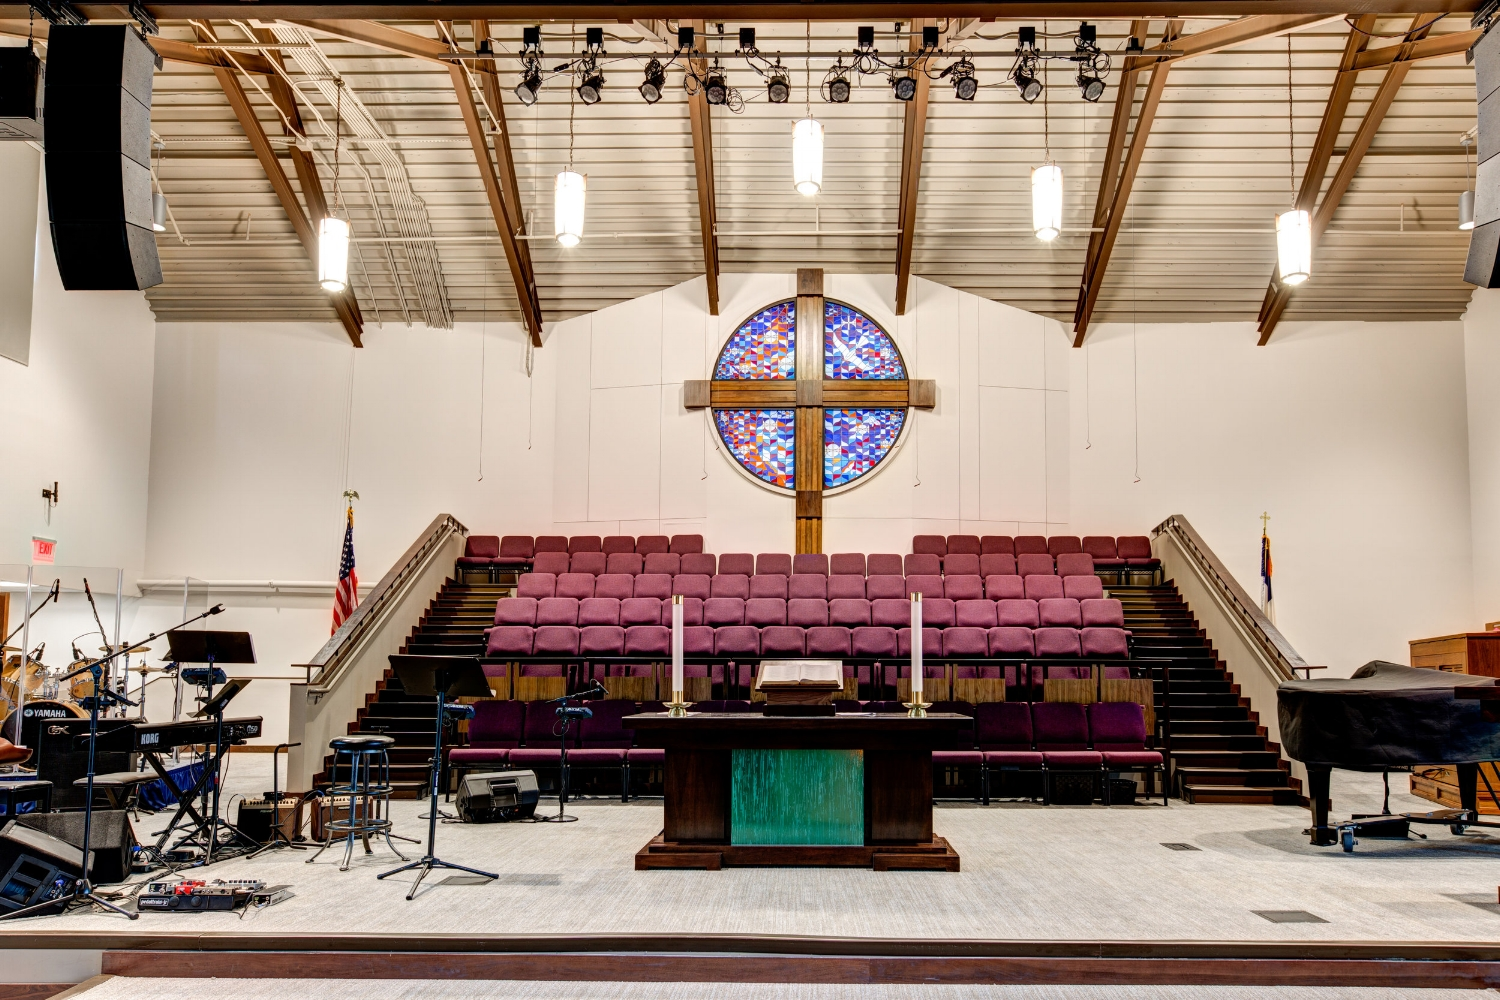 The dedication featured a blended worship style of traditional and contemporary.